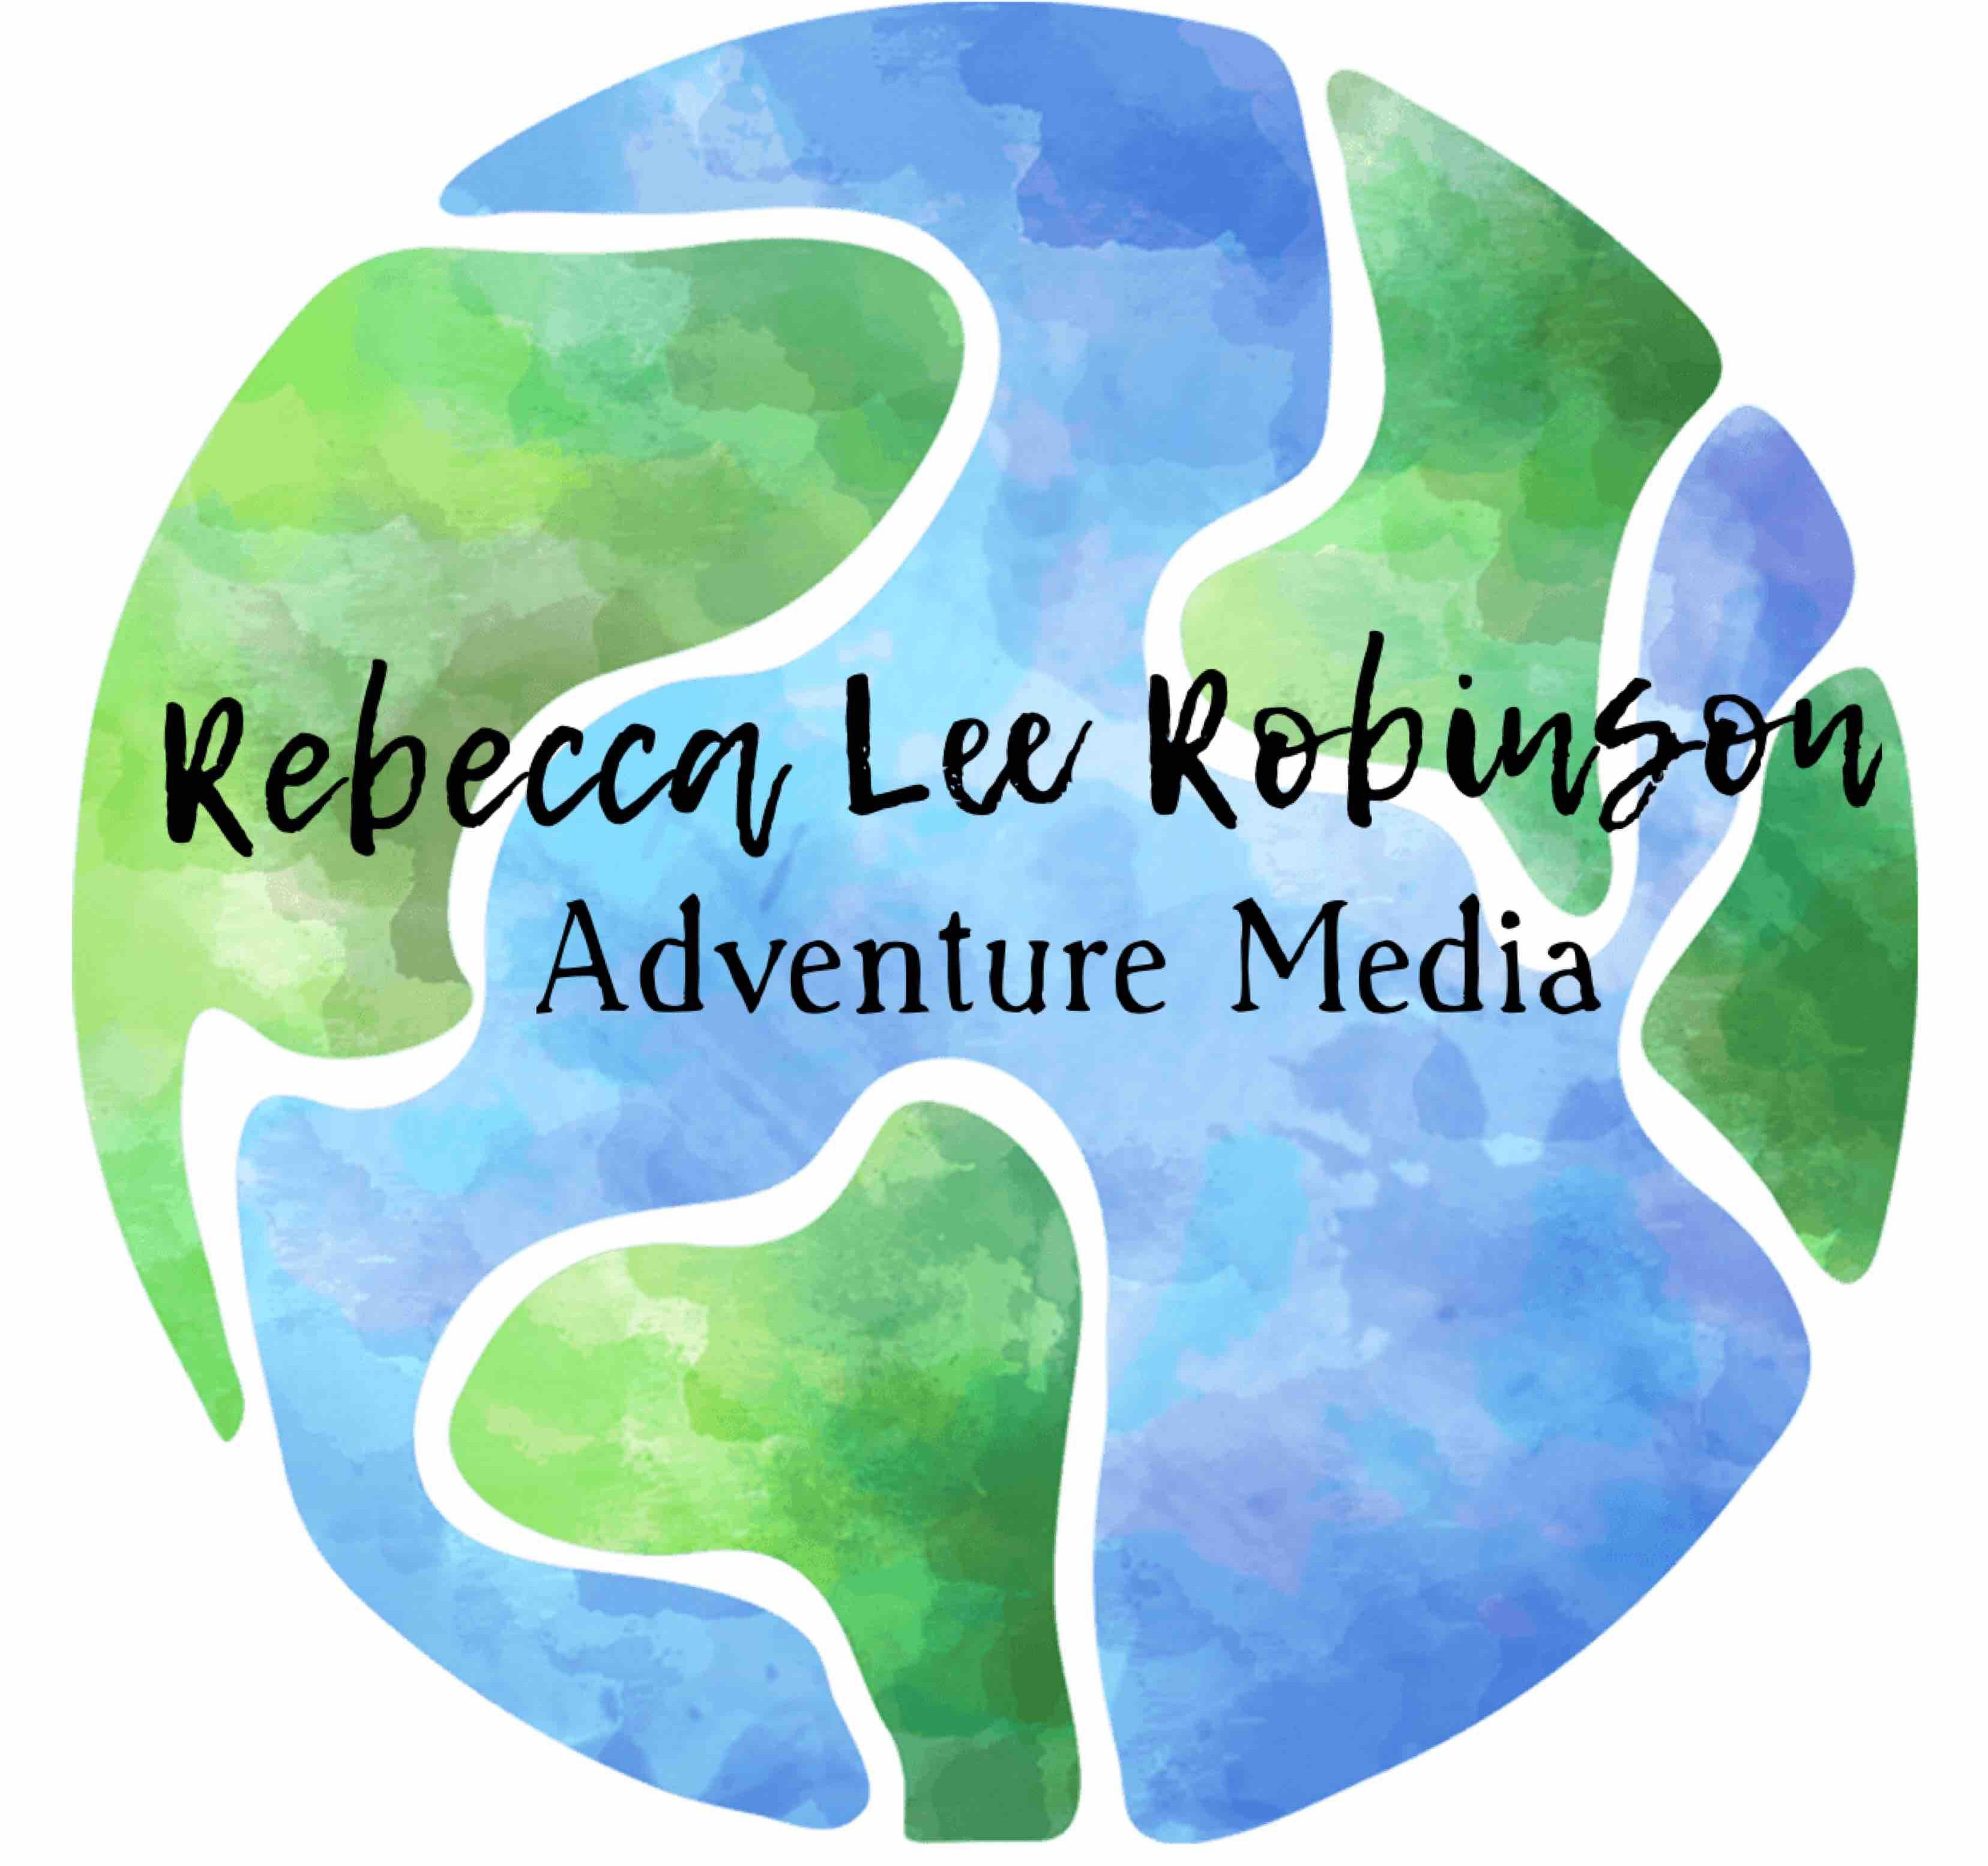 Rebecca Lee Robinson Adventure Media